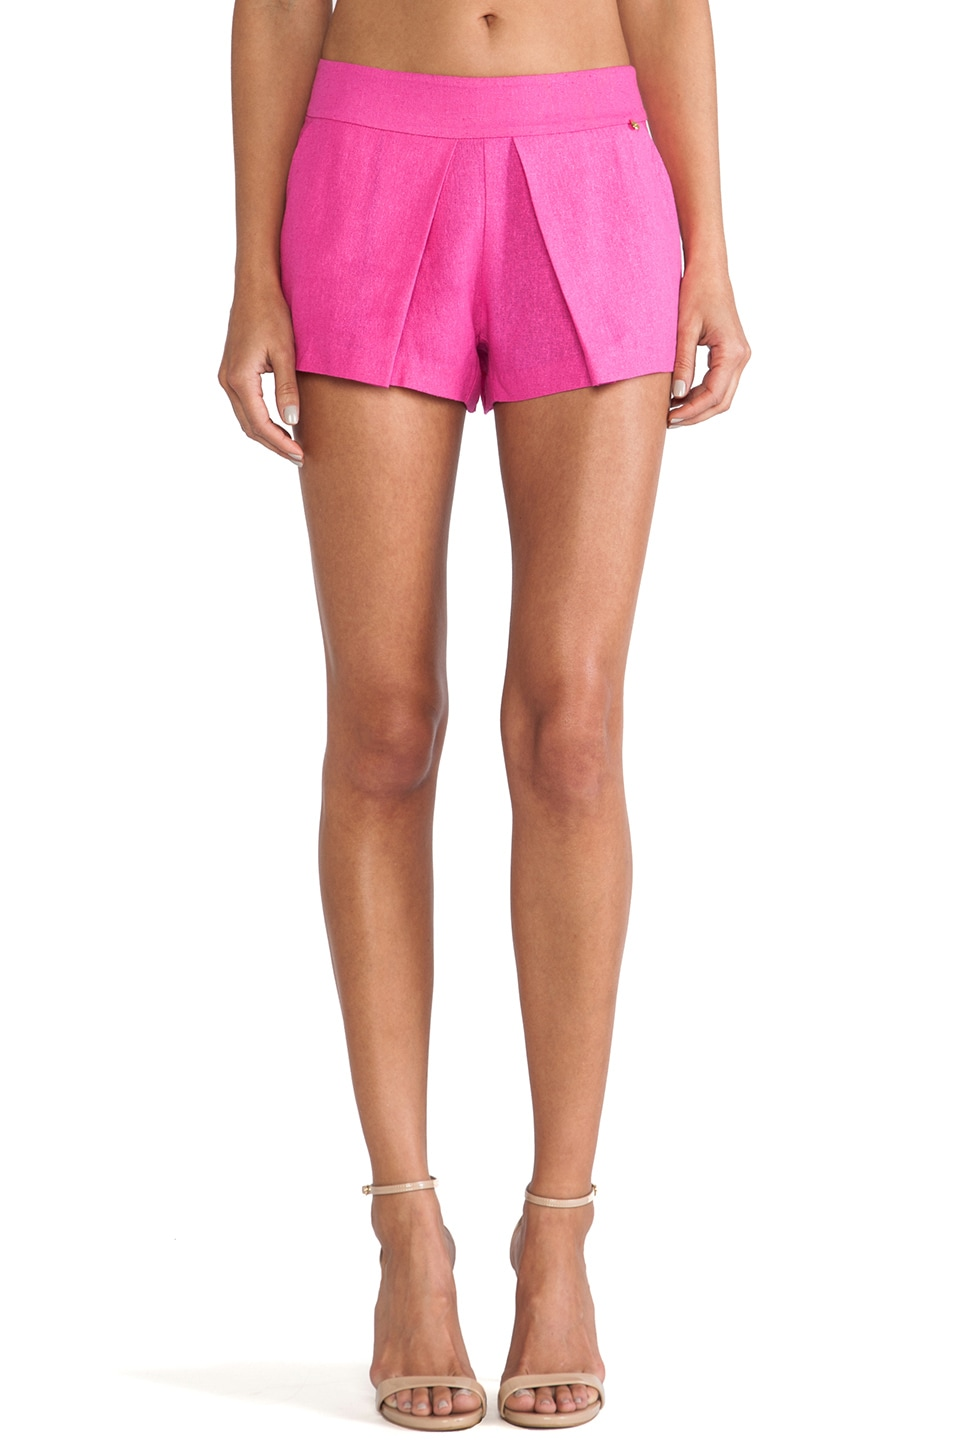 harlyn Pleated Short in Hot Pink